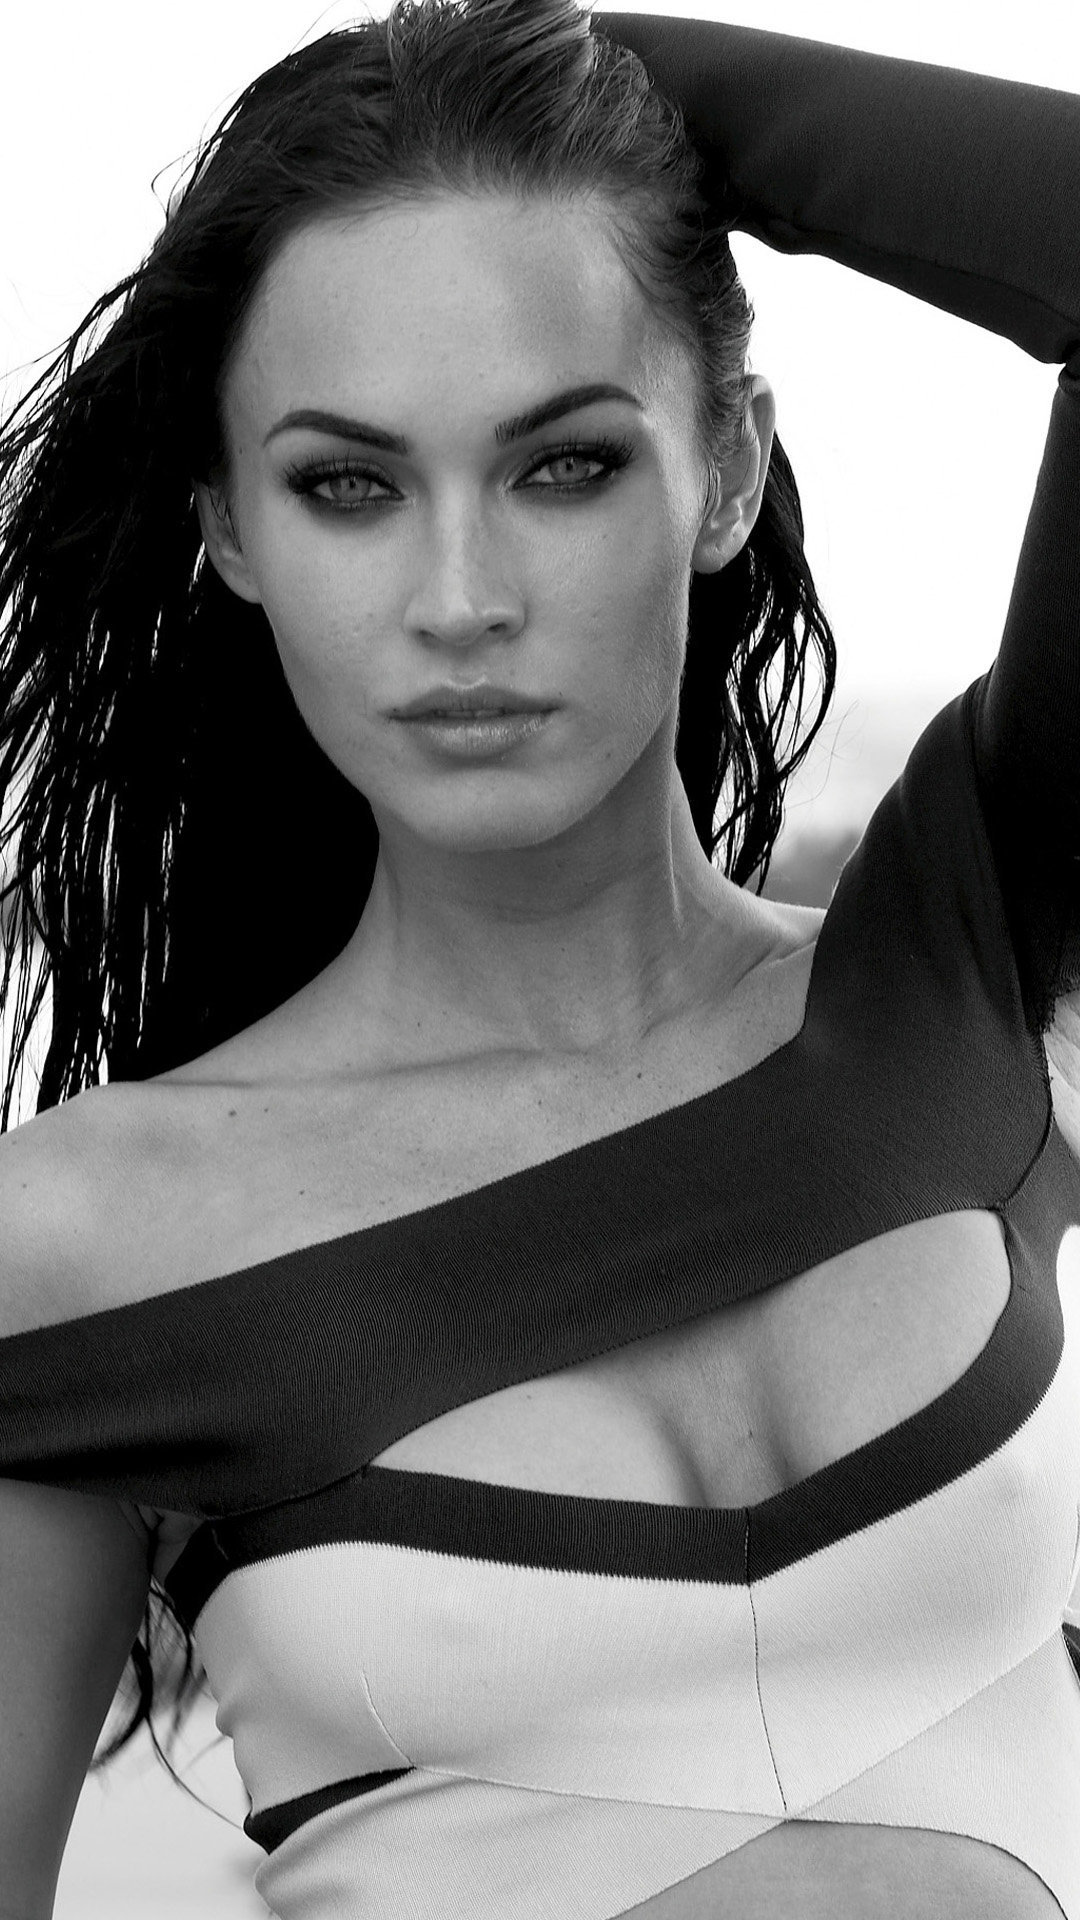 Megan Fox Blank and white